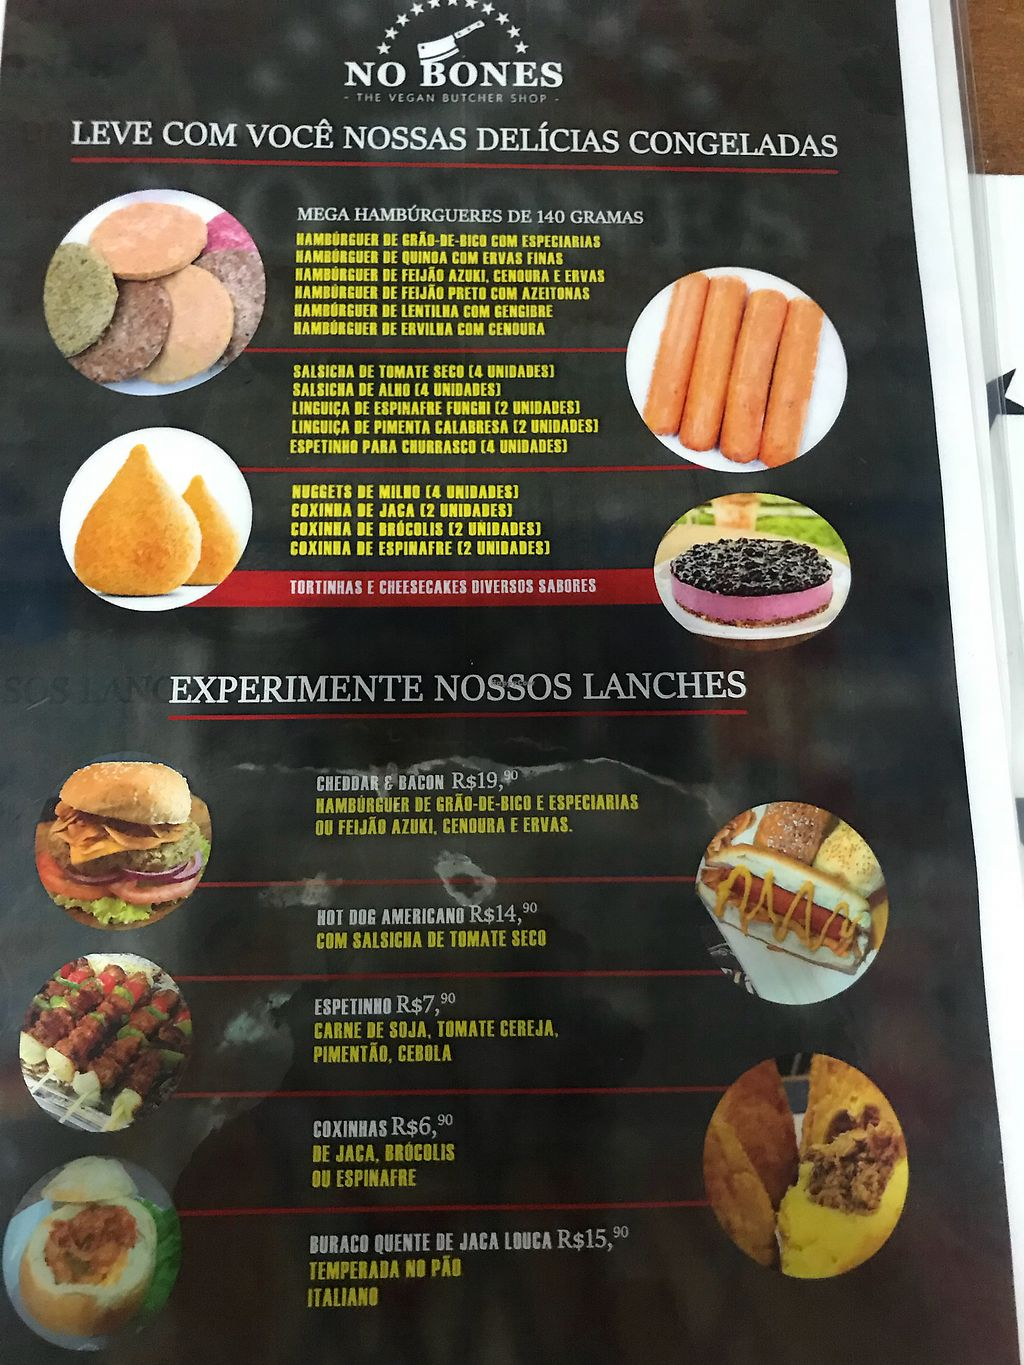 "Photo of No Bones - The Vegan Butcher Shop  by <a href=""/members/profile/rackoo"">rackoo</a> <br/>Menu page 2 <br/> May 9, 2018  - <a href='/contact/abuse/image/113797/397541'>Report</a>"